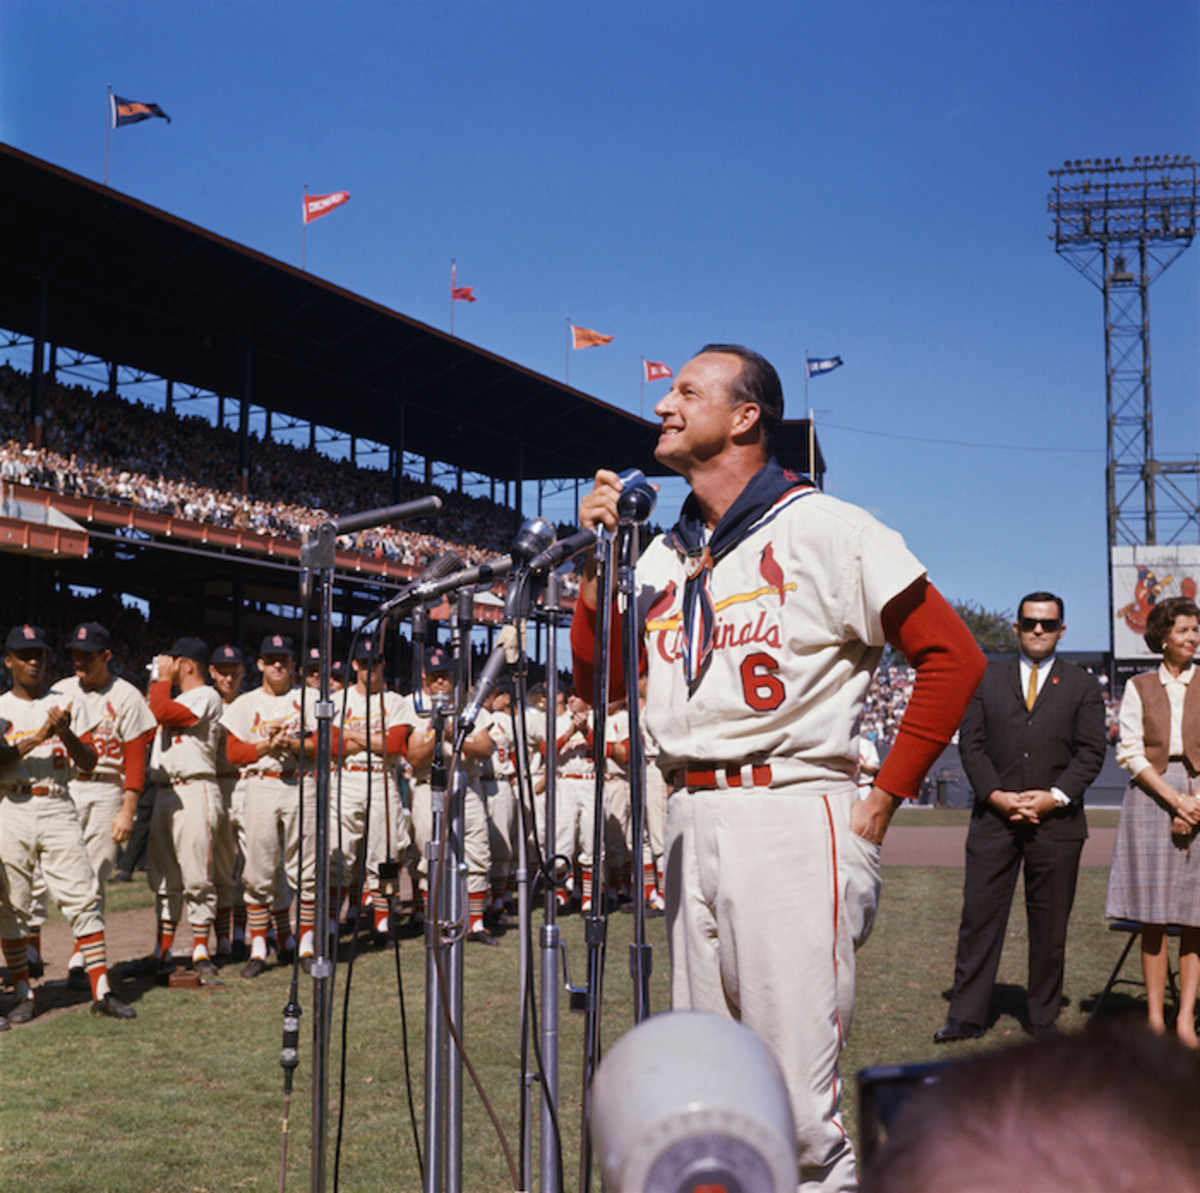 Stan Musial Day Ceremonies at Busch Stadium before his last game of his career in September 1963. Photo: Bettmann/Getty Images